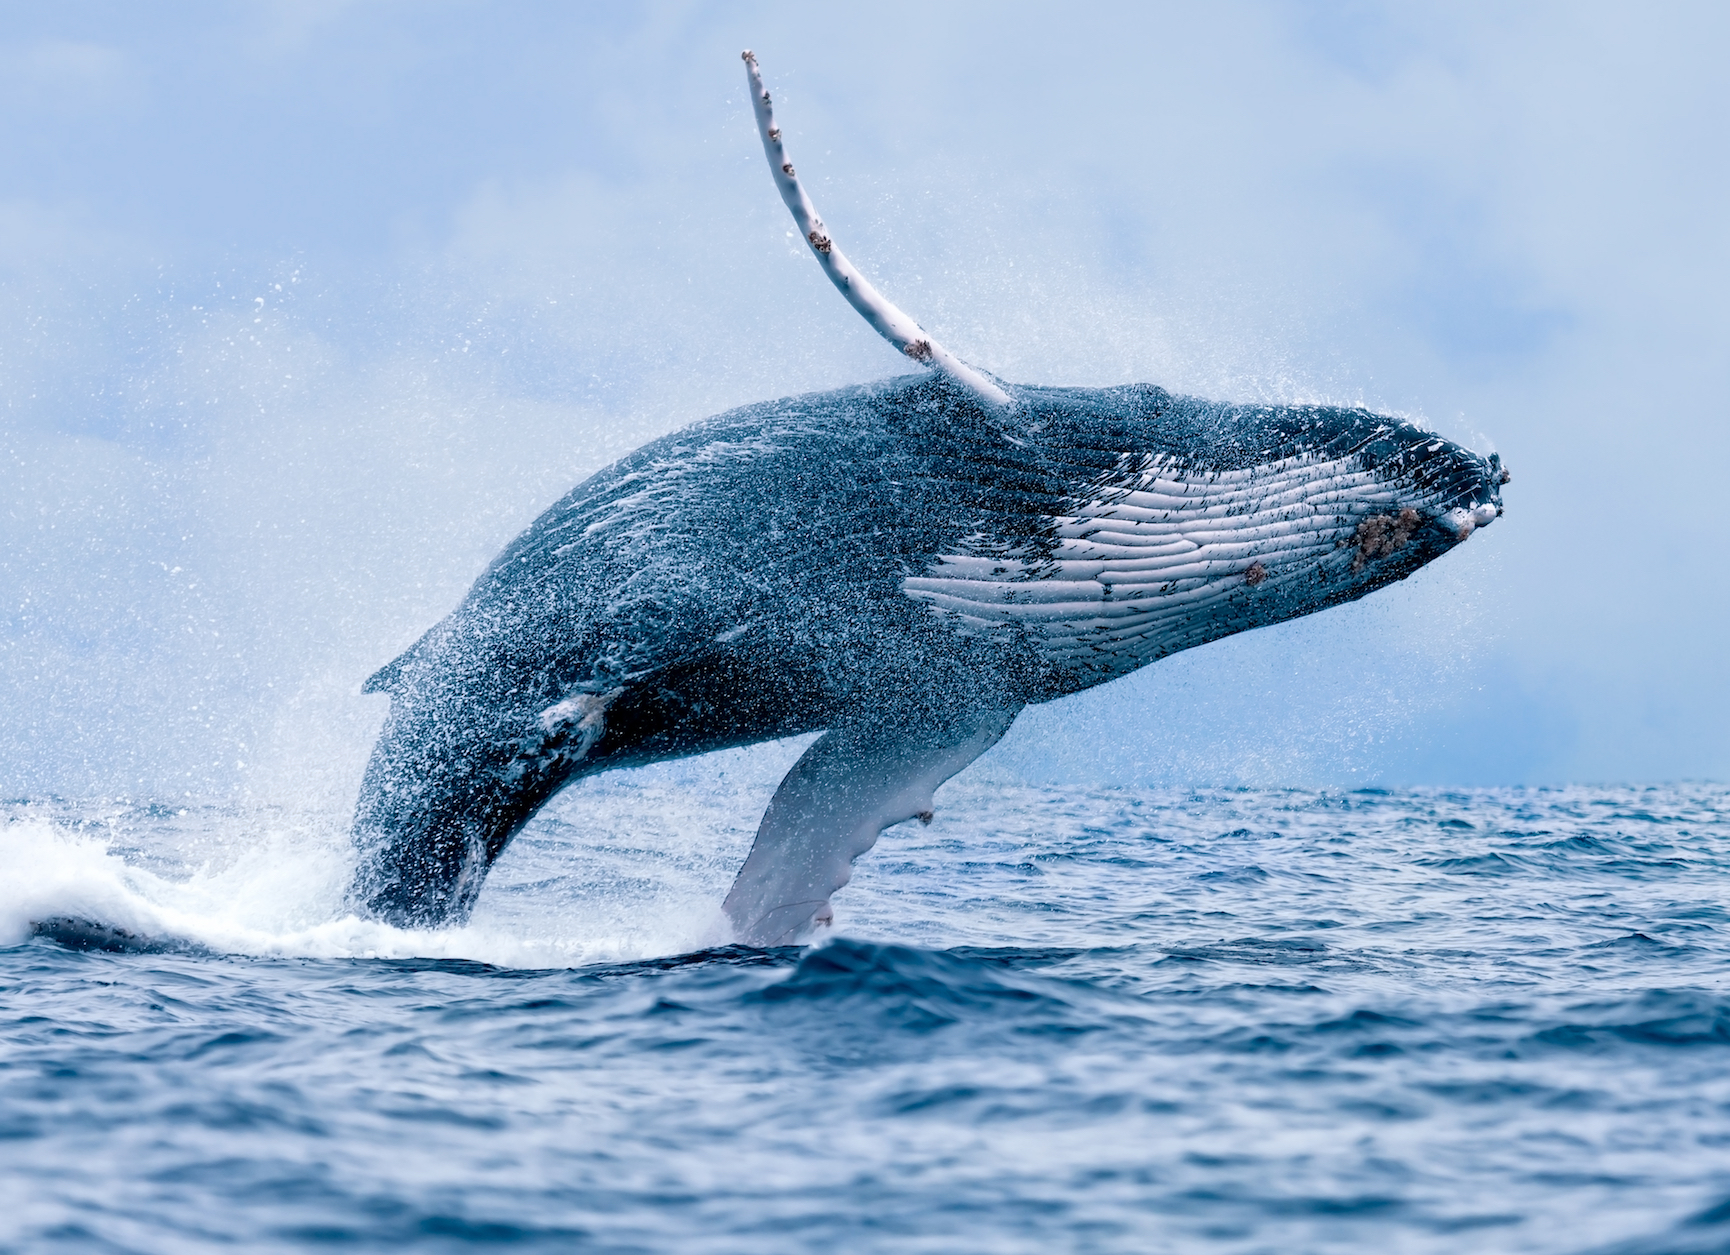 New research claims that rather than singing to attract a mate, whales actually sing as a form of echolocation.